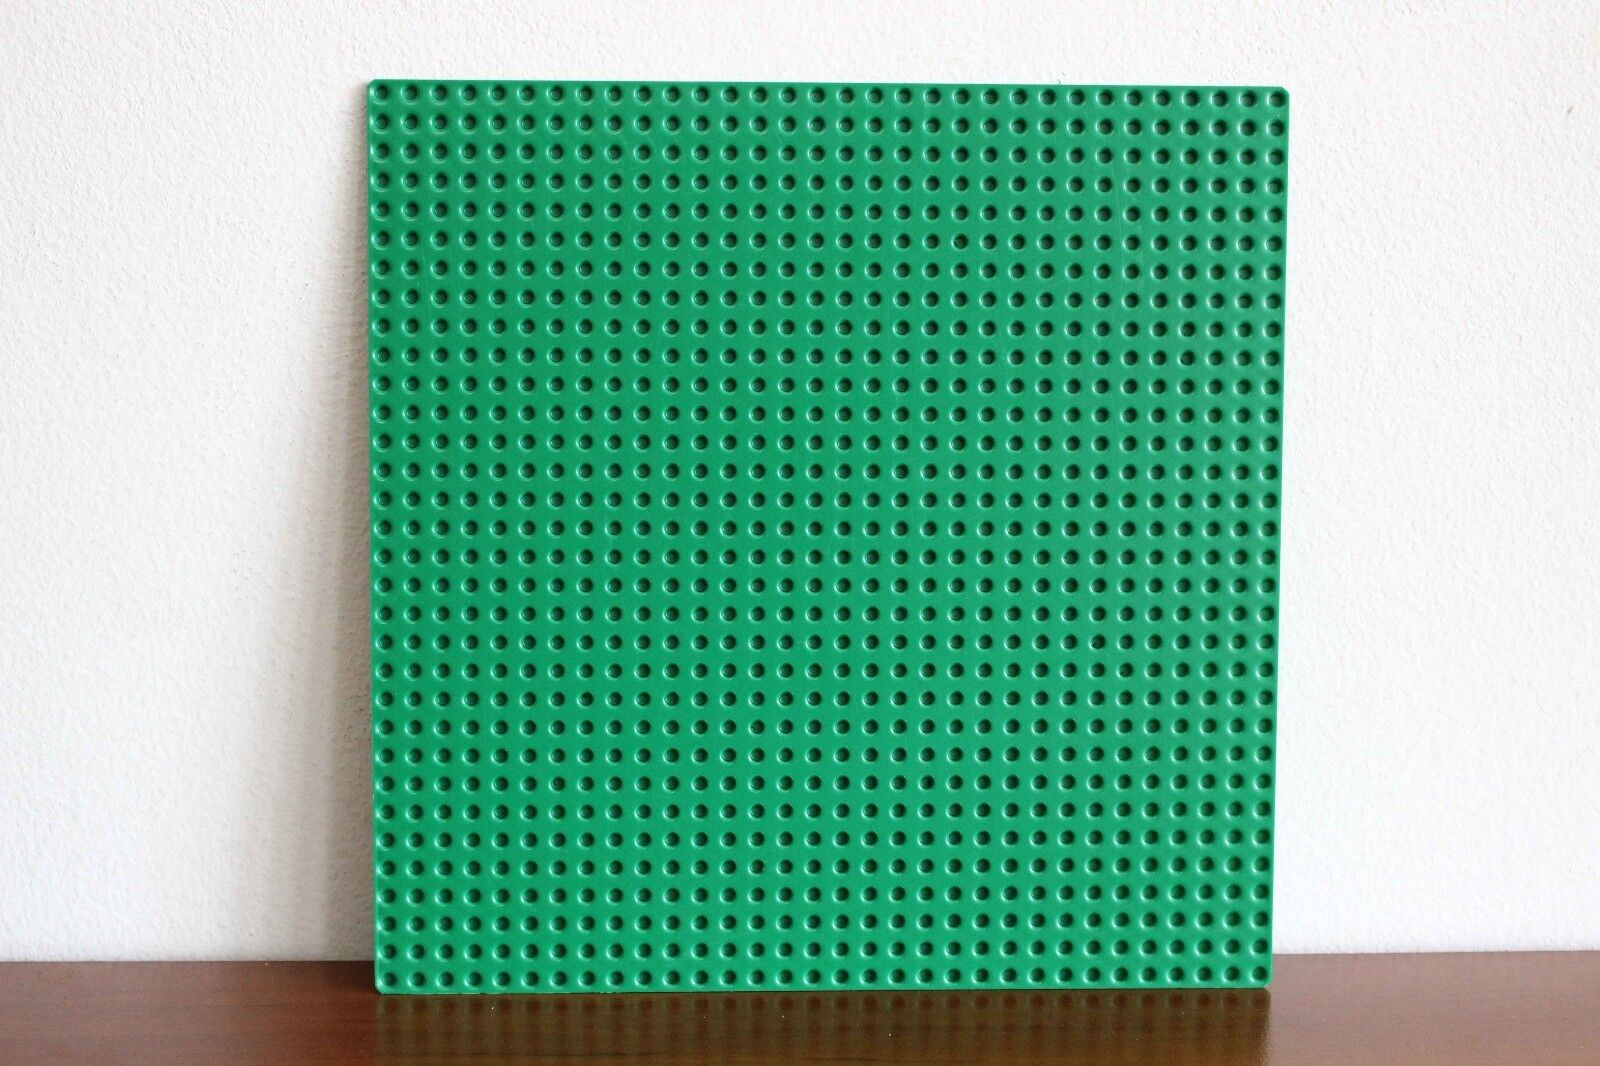 LEGO SPARES PARTS 10 X BLUE TILE THIN  BASEPLATE base plate 3 X 2 studs vgc